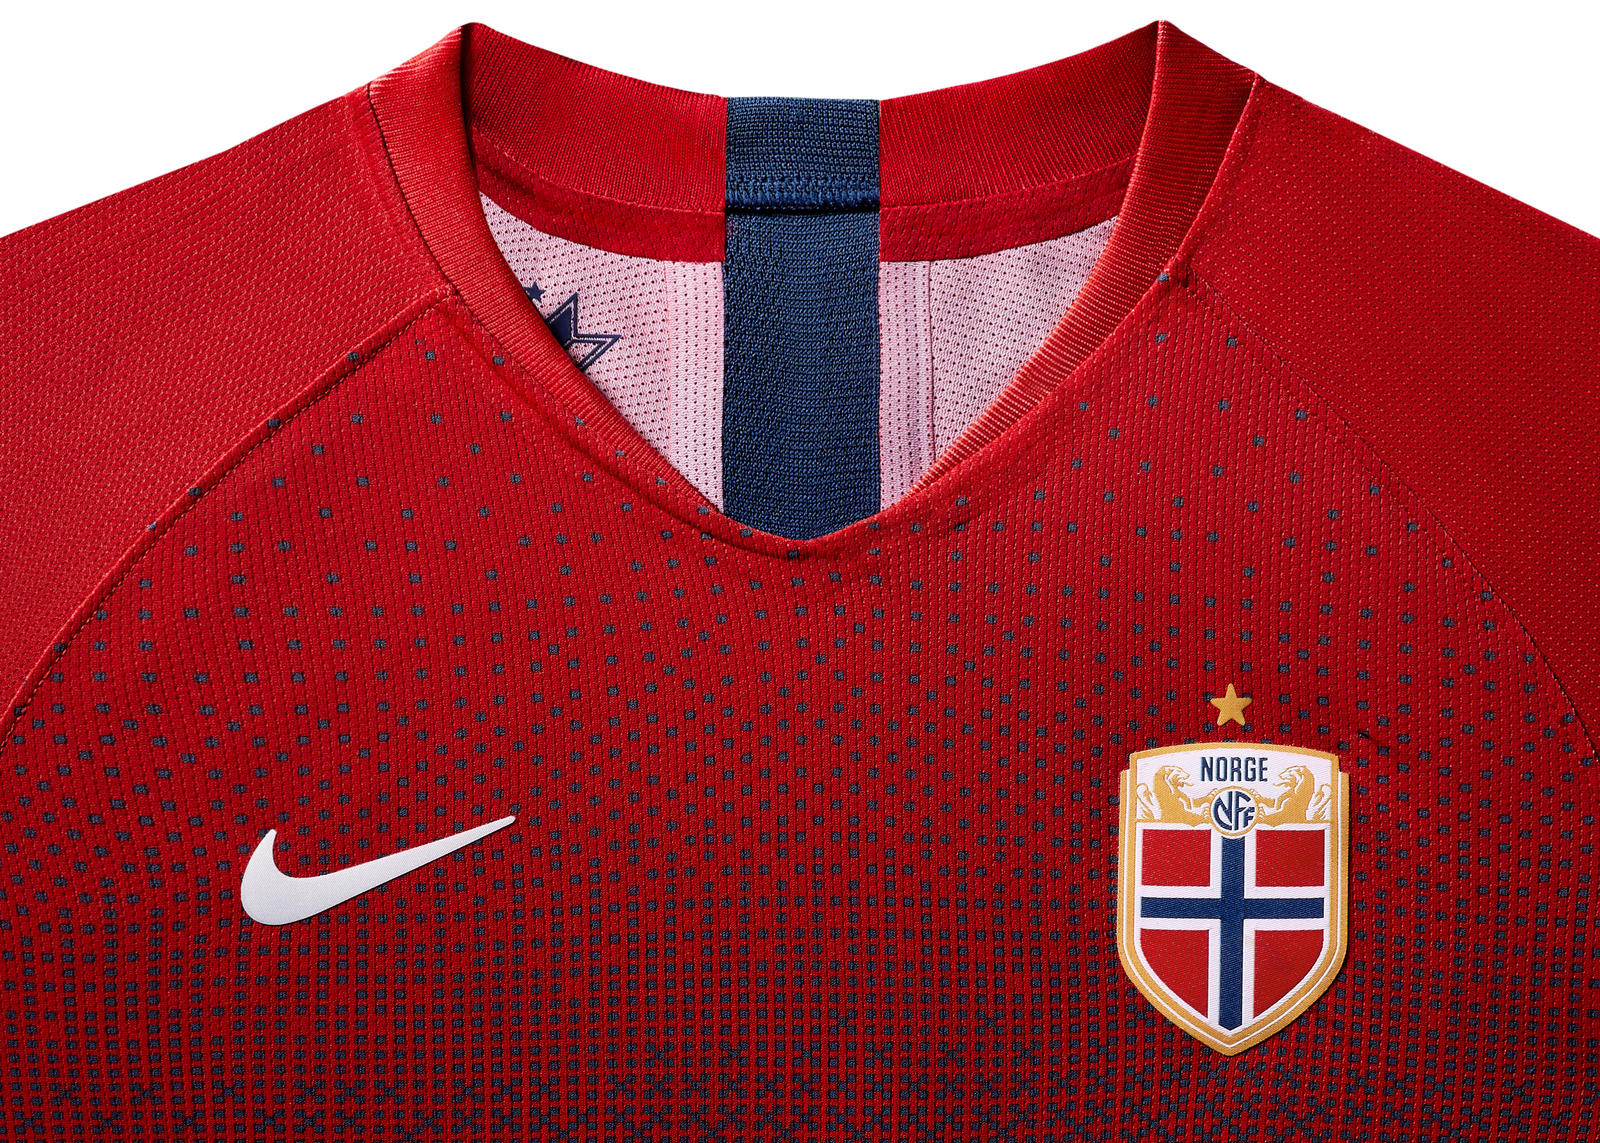 Norway National Team Kit 2019 2